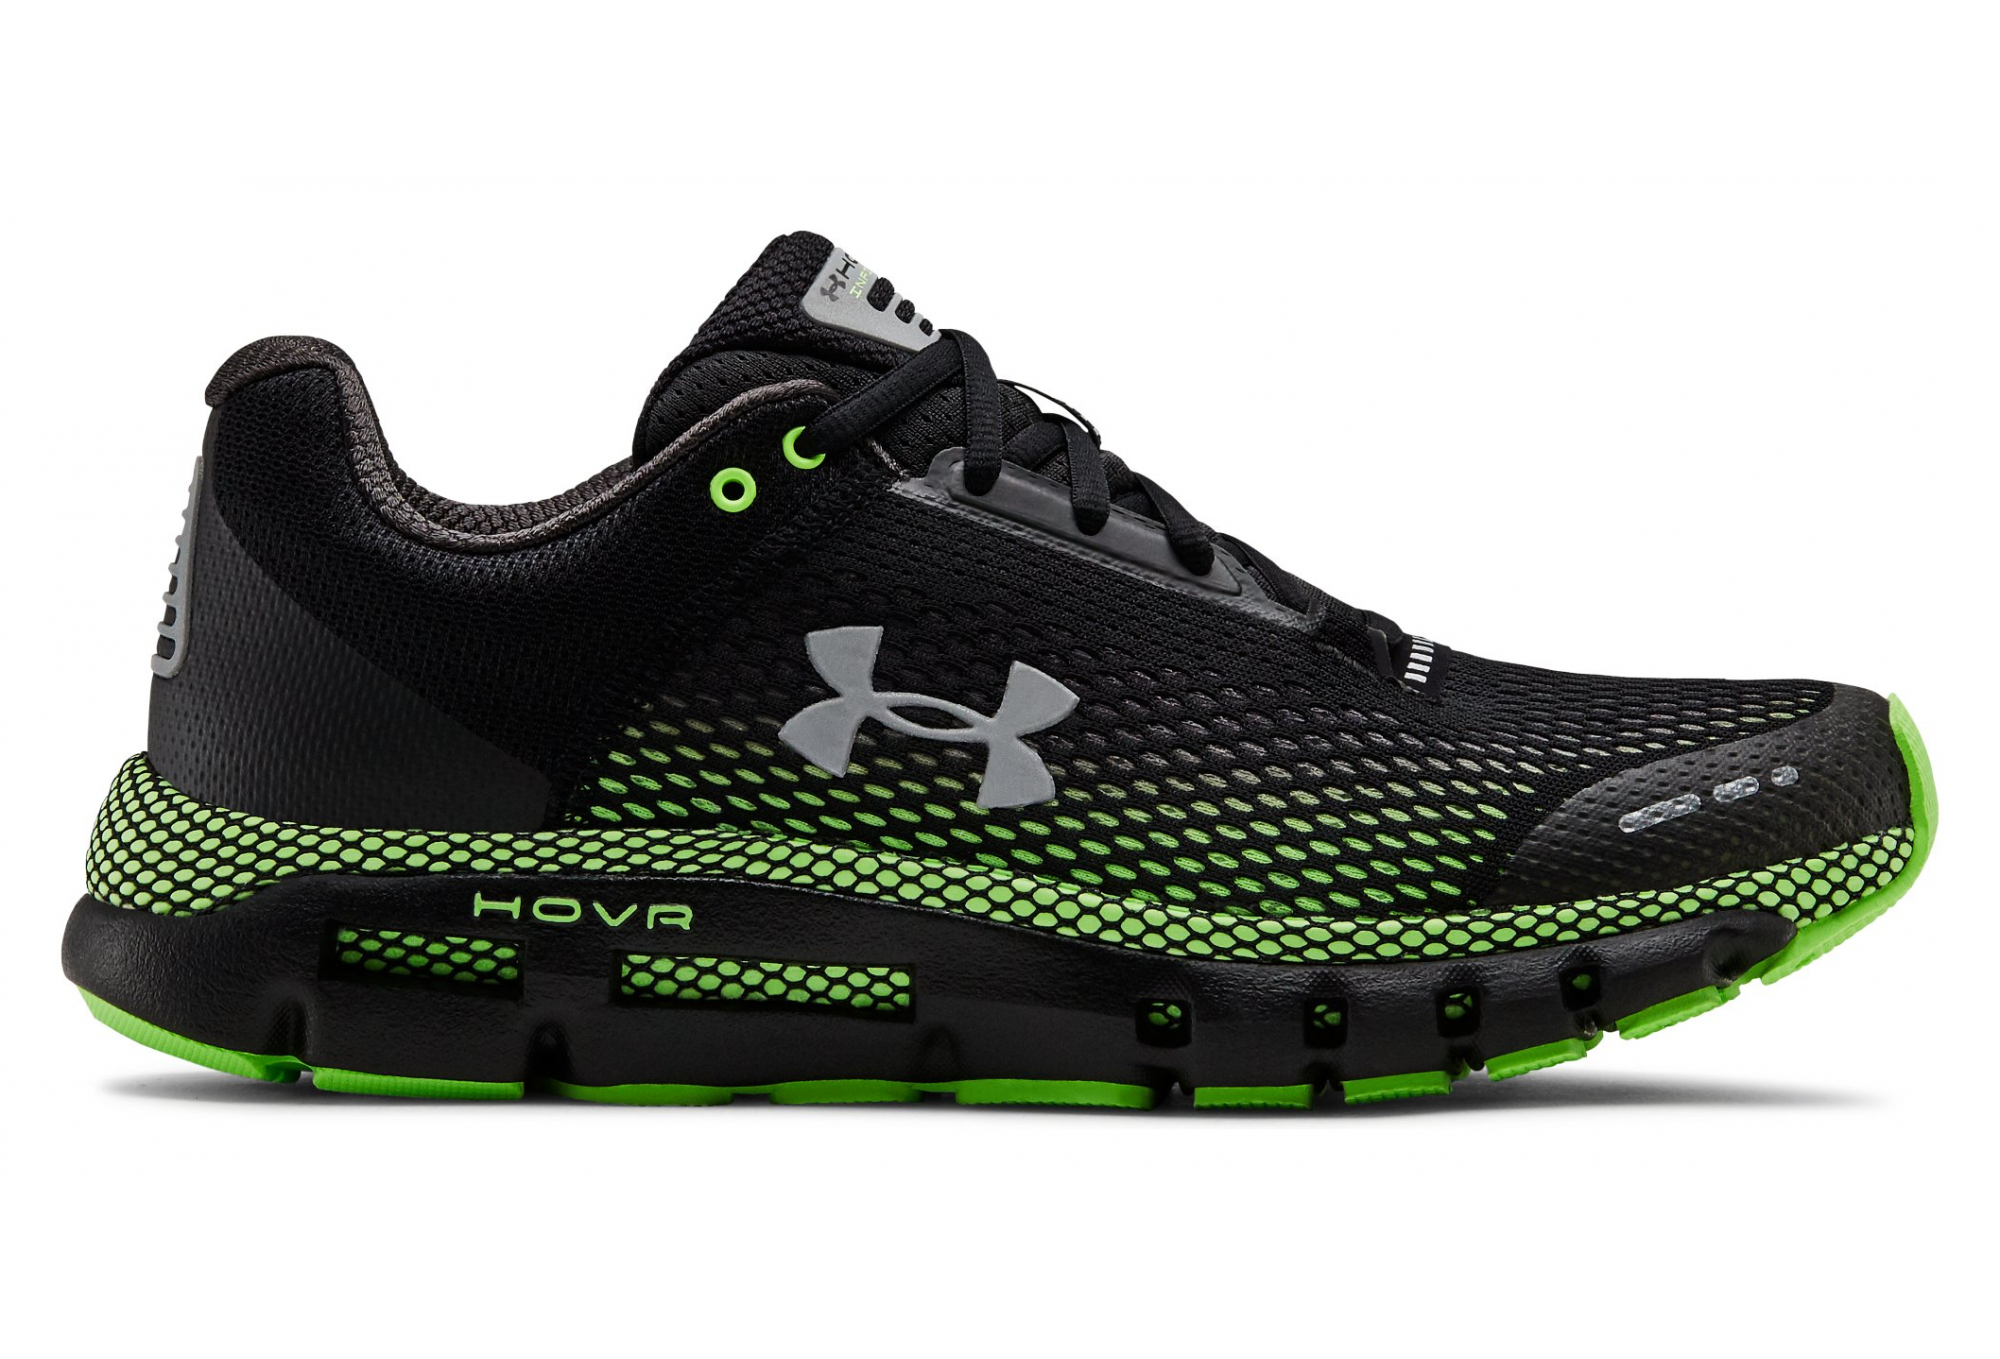 Under Armour HOVR Infinite Nero Verde